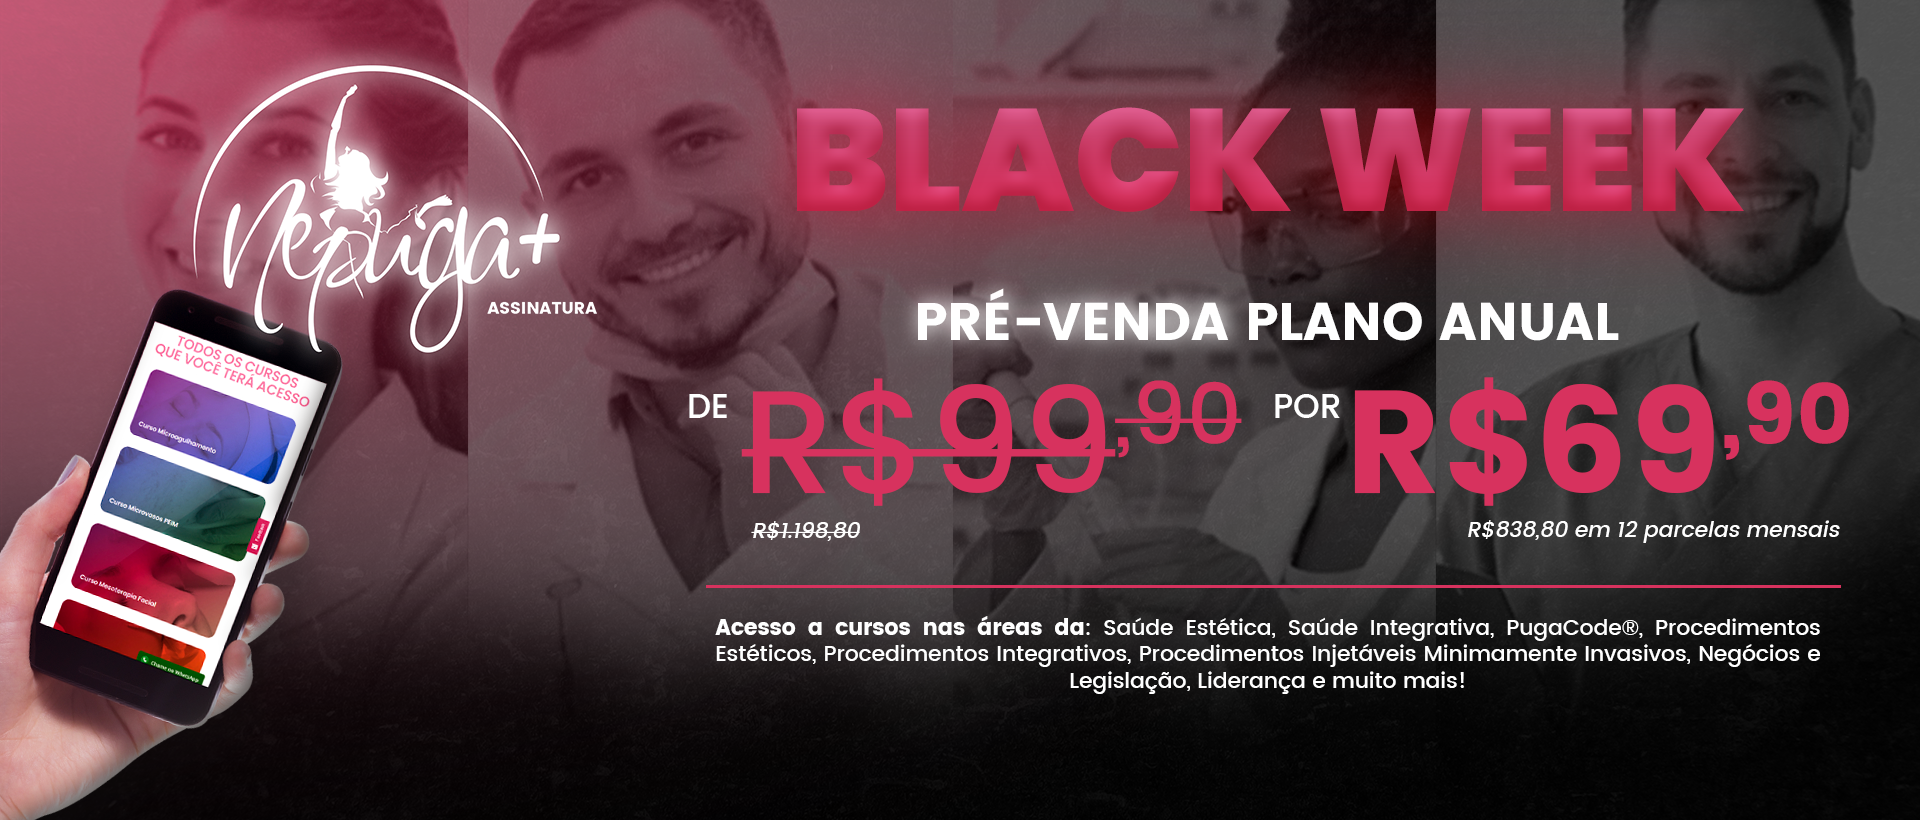 Nepuga+ Black Week